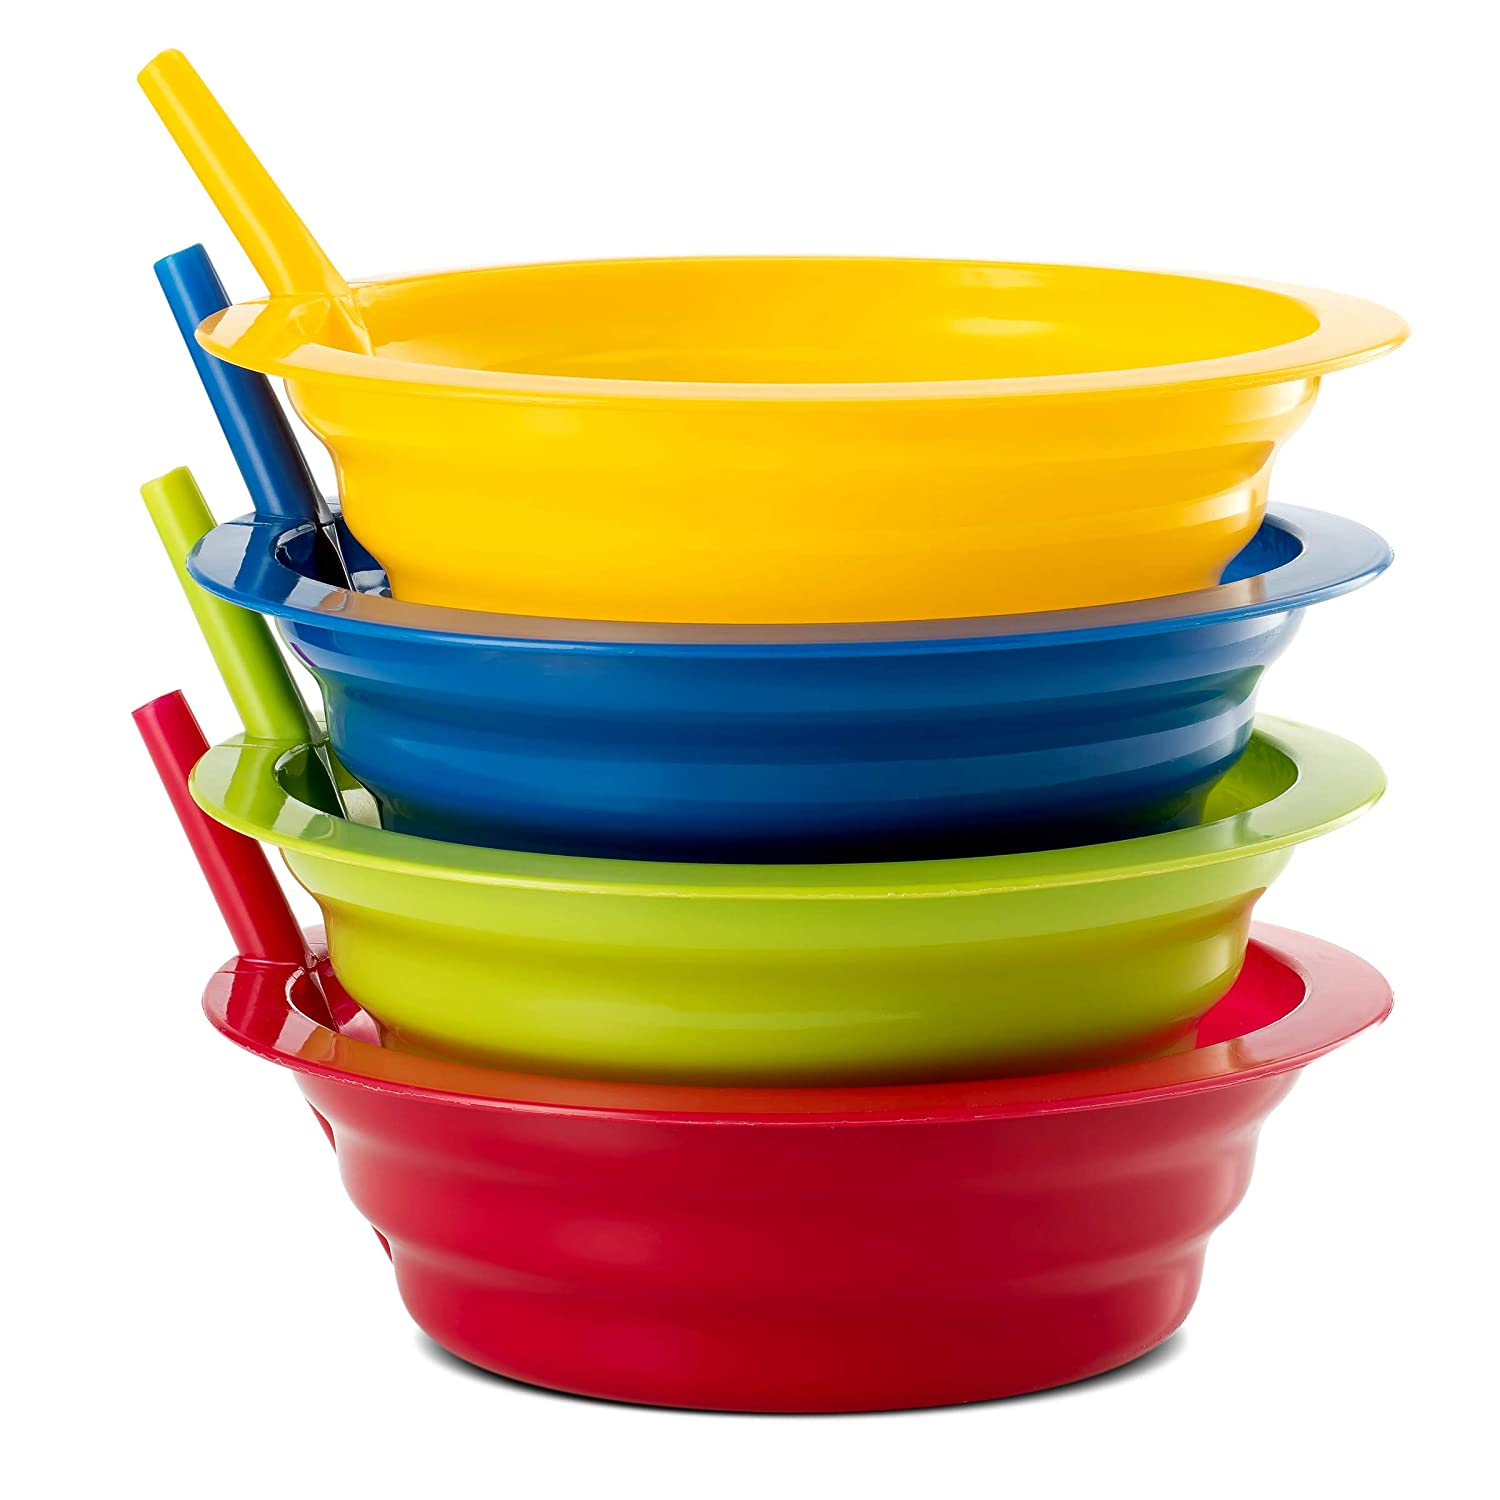 Plaskidy Cereal Bowls with Straws, Set of 4 Kids Bowls with Built-in Straws, 22 OZ, Sippy Bowls are Dishwasher/Microwave Safe, Bright Colors, BPA Free, Great Kids Soup/Cereal Bowls